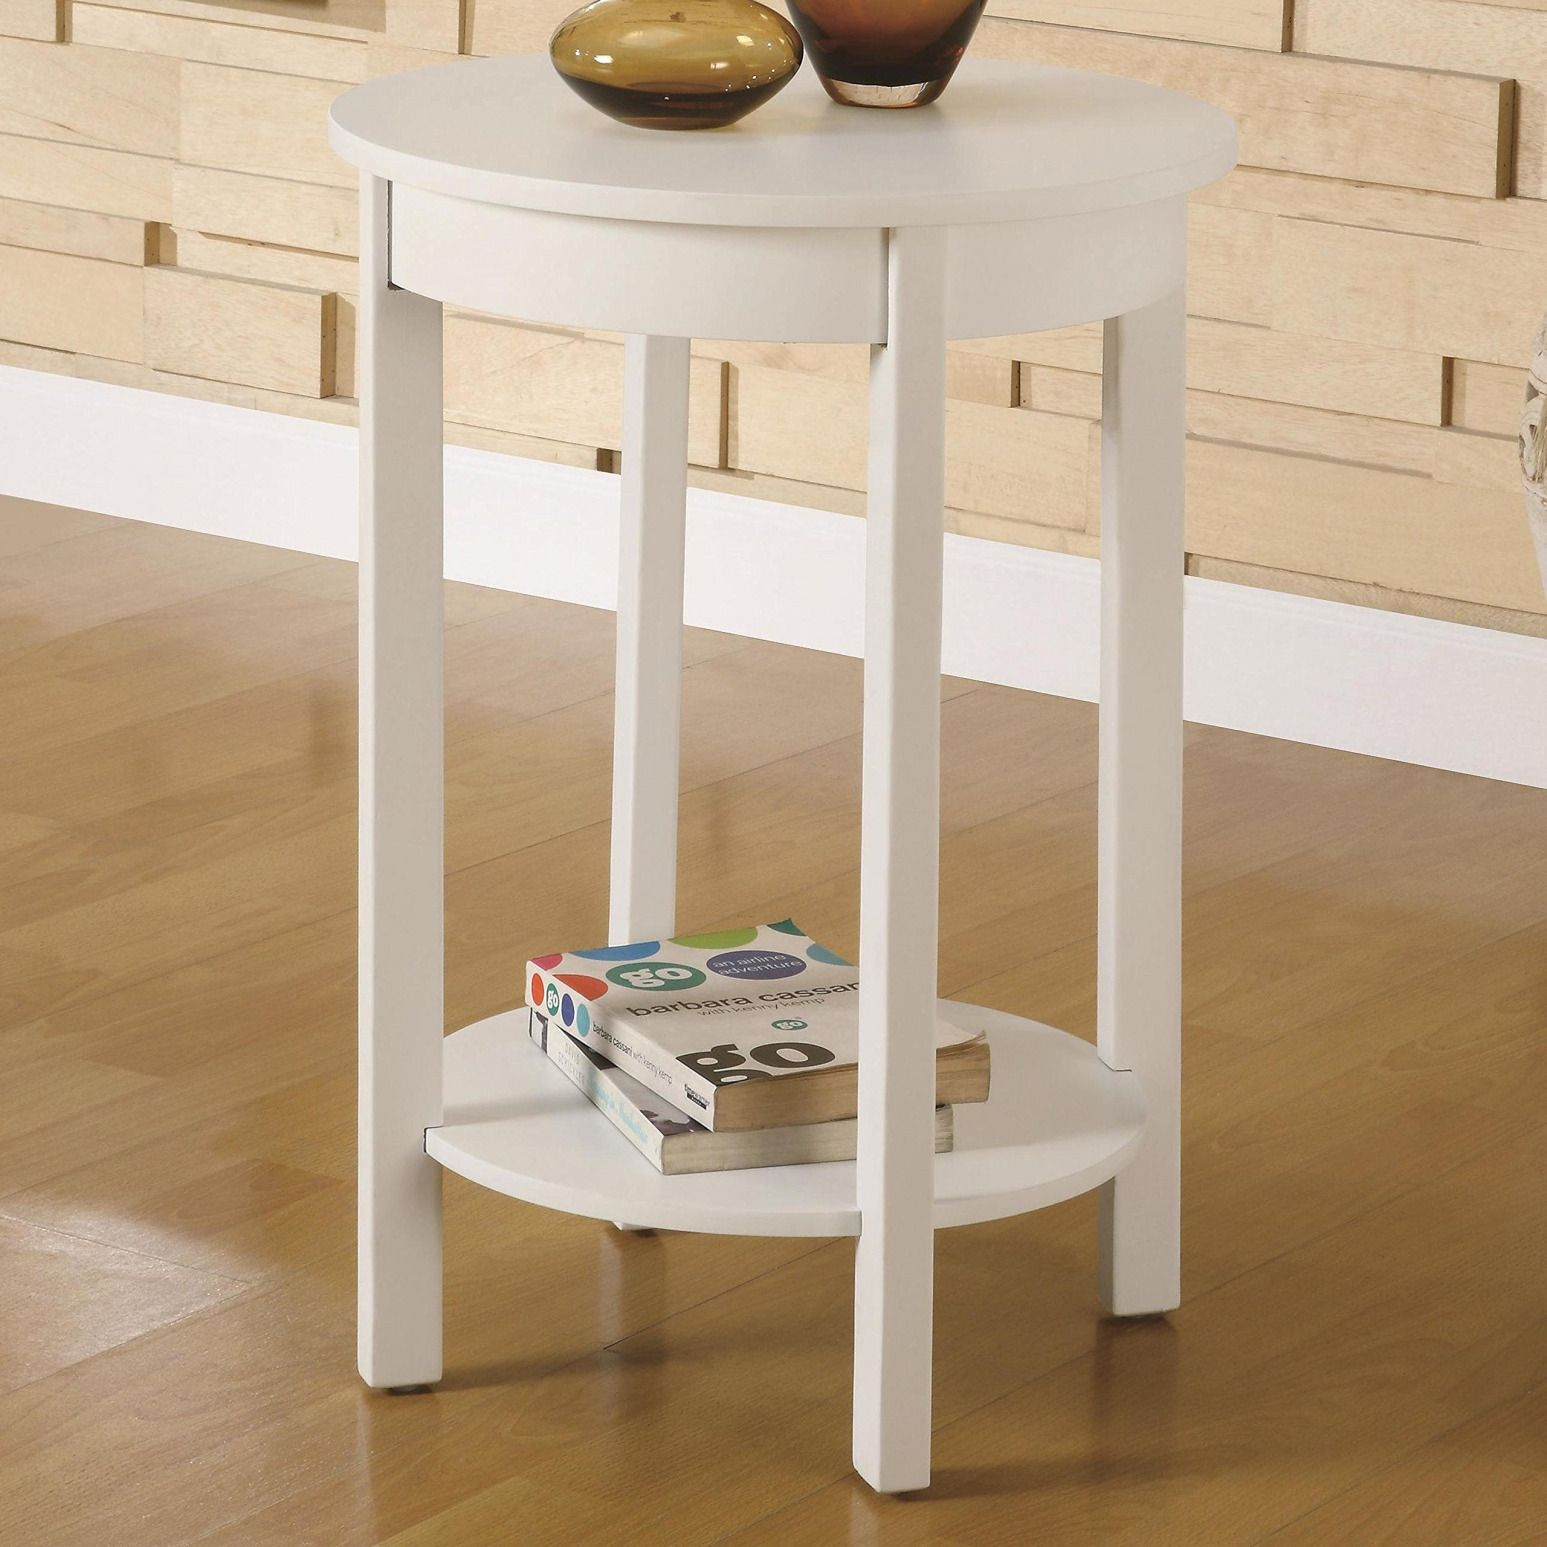 100 Round Bookshelf Table Americas Best Furniture Check More At Http Livelylighting Com Ro Small Round Bedside Table Small Bedside Table White Side Tables [ 1547 x 1547 Pixel ]